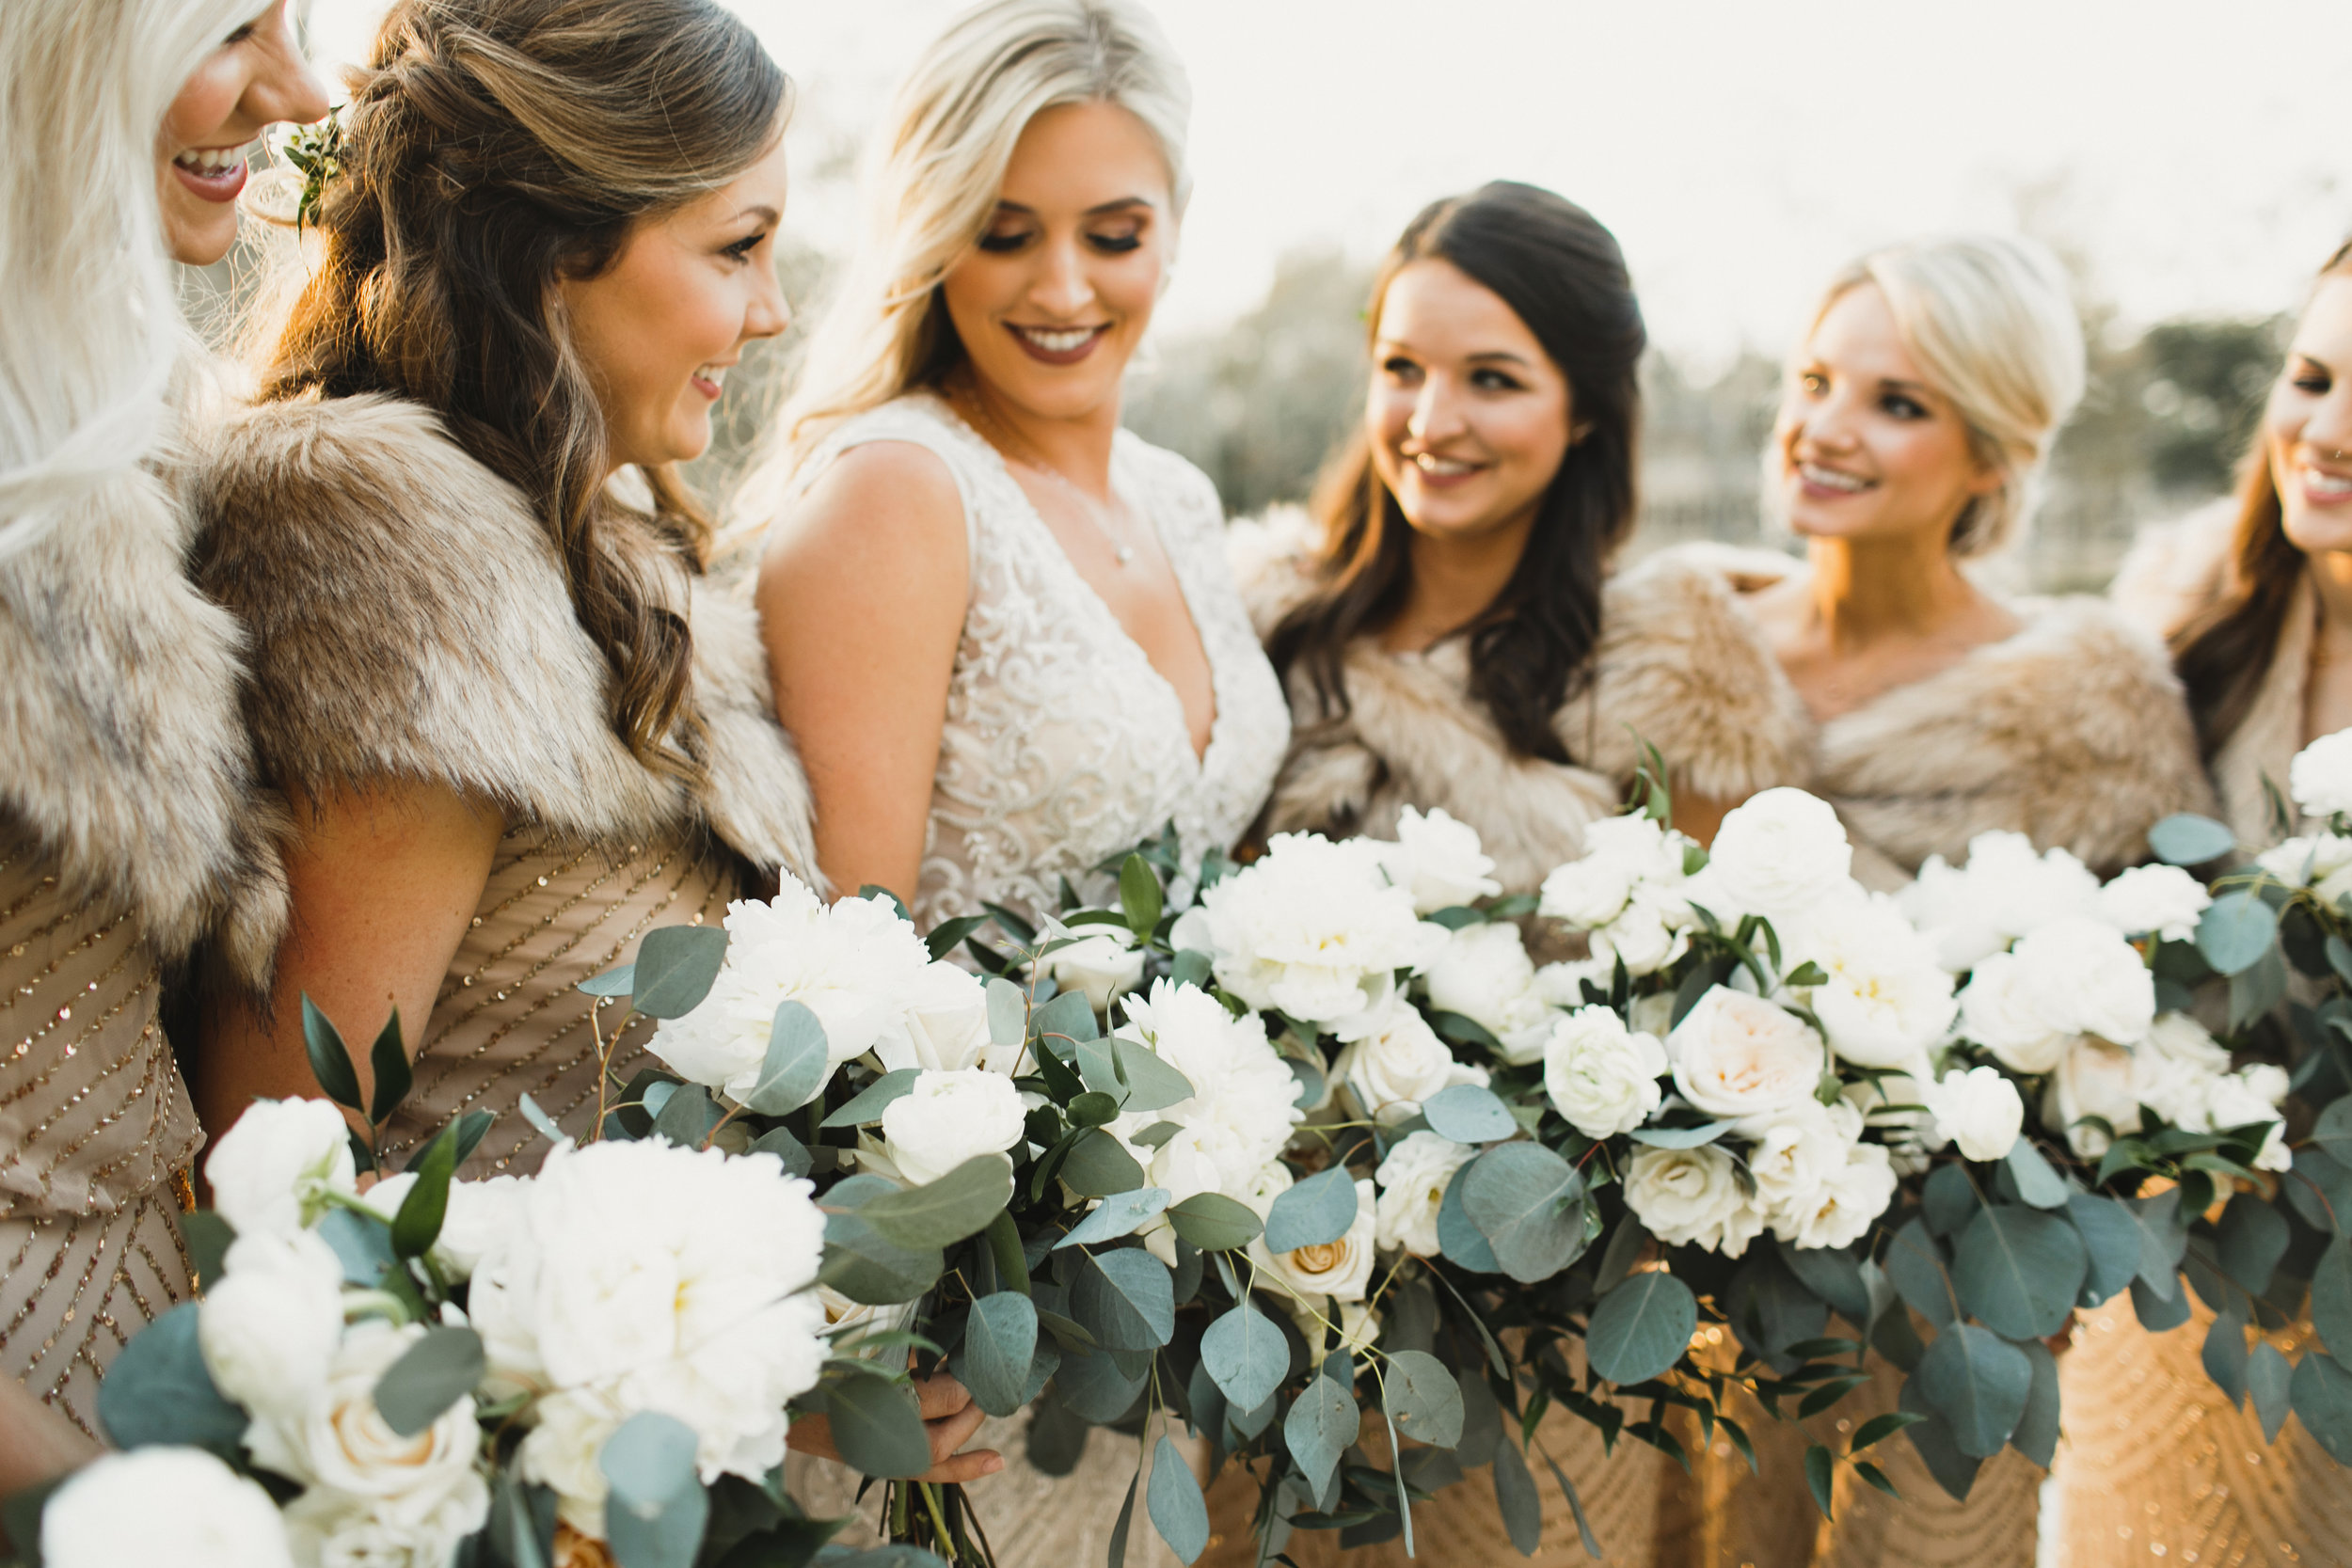 Southern Fete, Southern Wedding, Flowers by Rodney, Bride and Bridesmaids